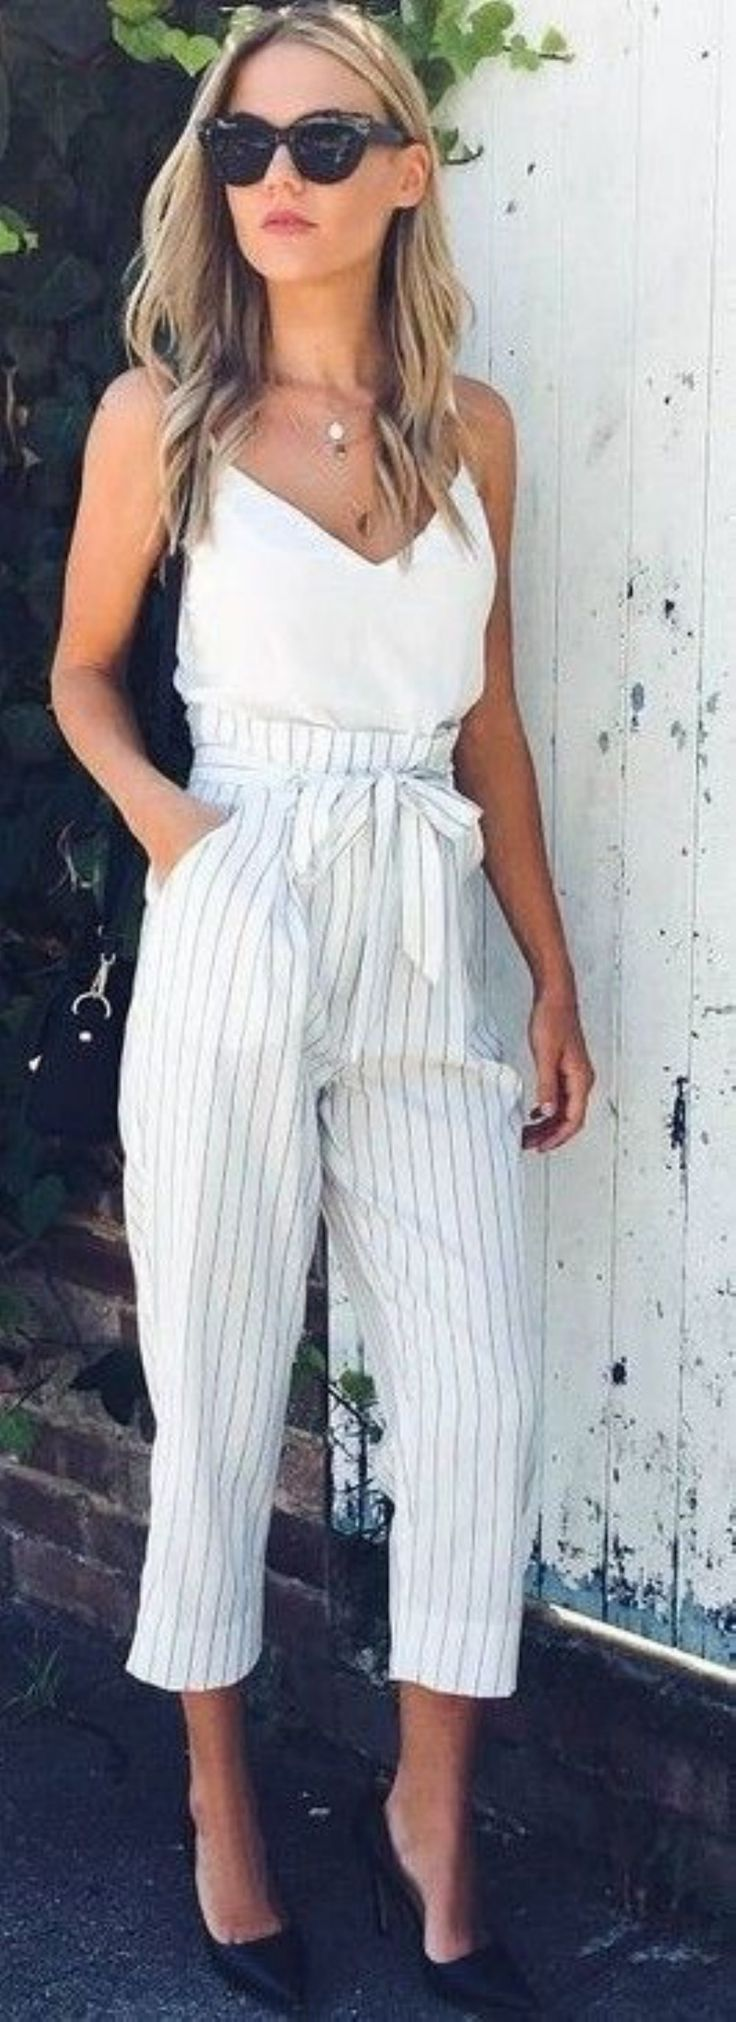 Cool 33 Beautiful Jumpsuits you'll Never Regret to Try from https://www.fashionetter.com/2017/04/16/beautiful-jumpsuits-youll-never-regret-to-try/